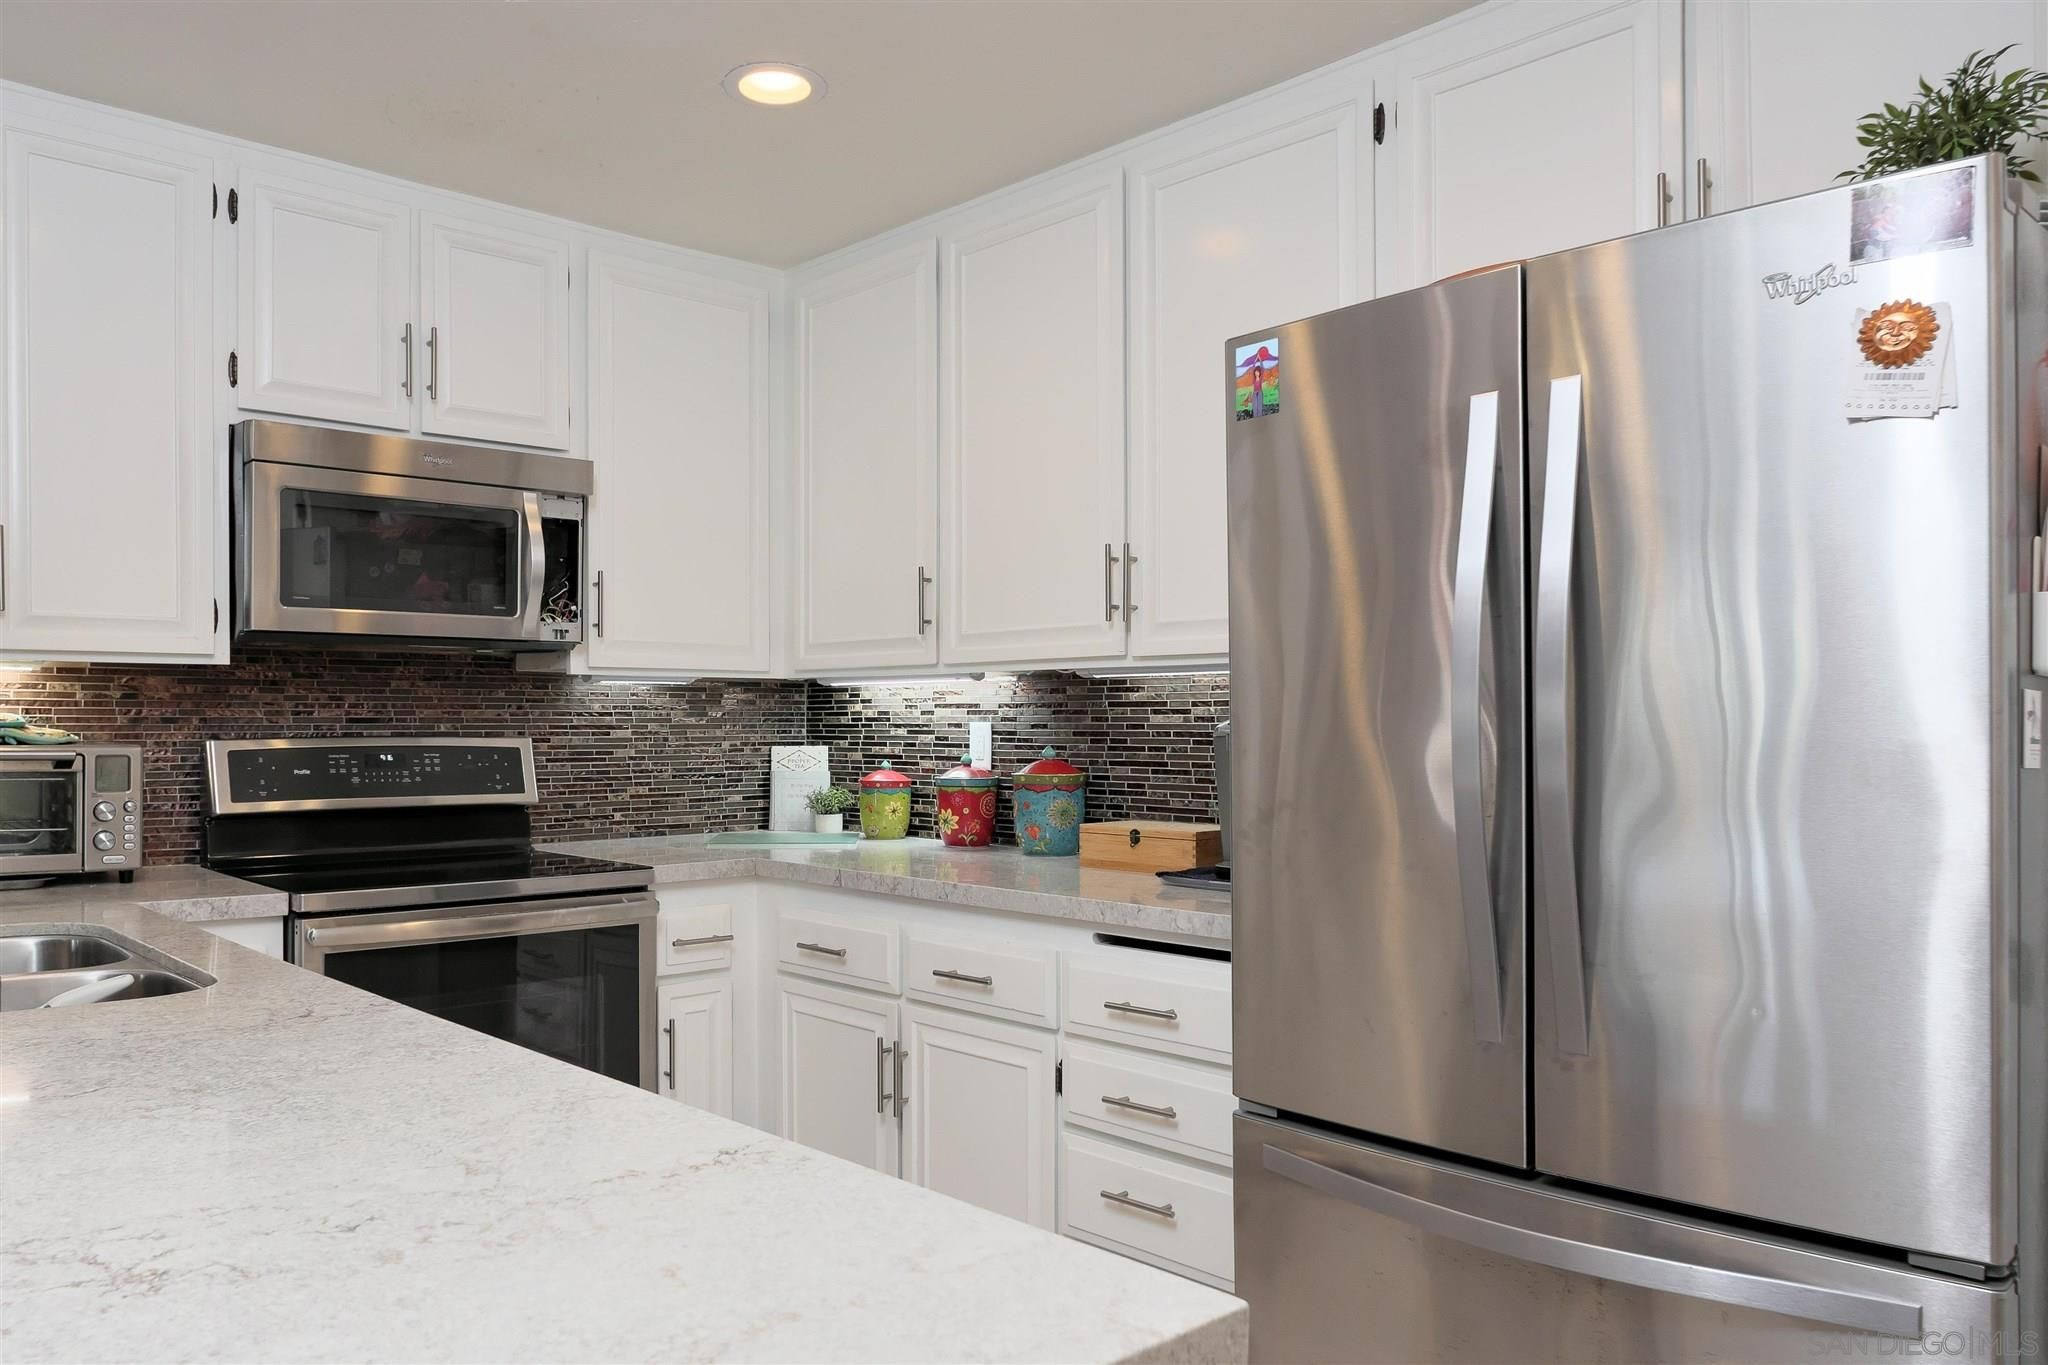 Main Photo: MISSION VALLEY Condo for sale : 2 bedrooms : 5705 FRIARS RD #51 in SAN DIEGO